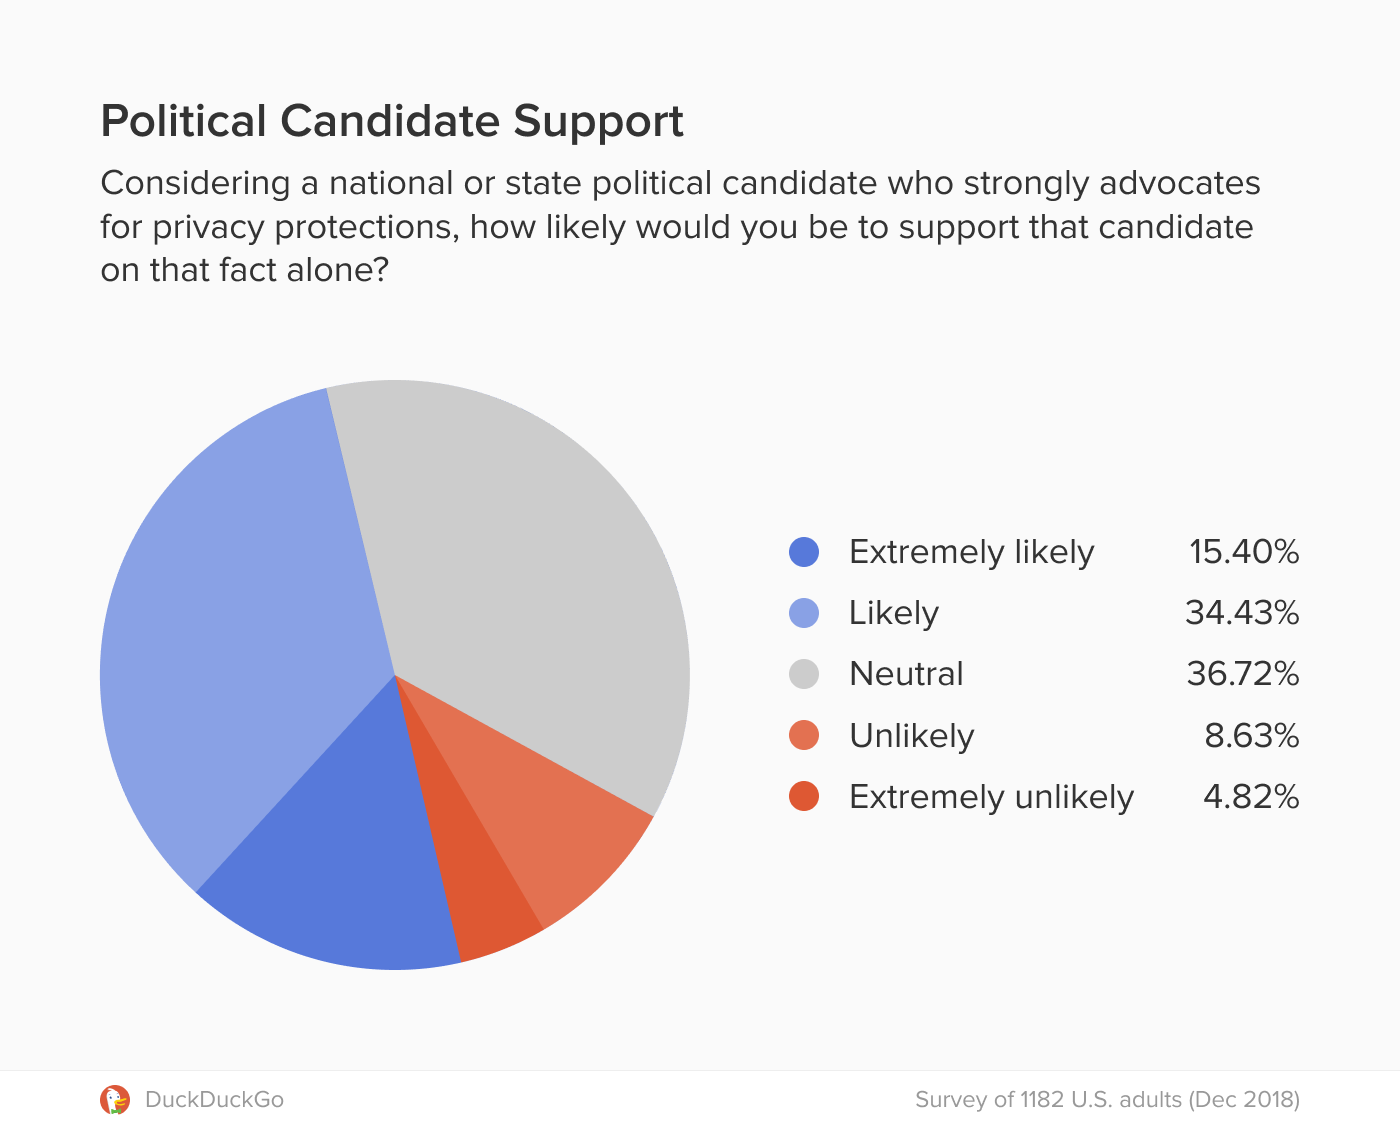 Chart showing strong support for political candidates that advocate for privacy protections.